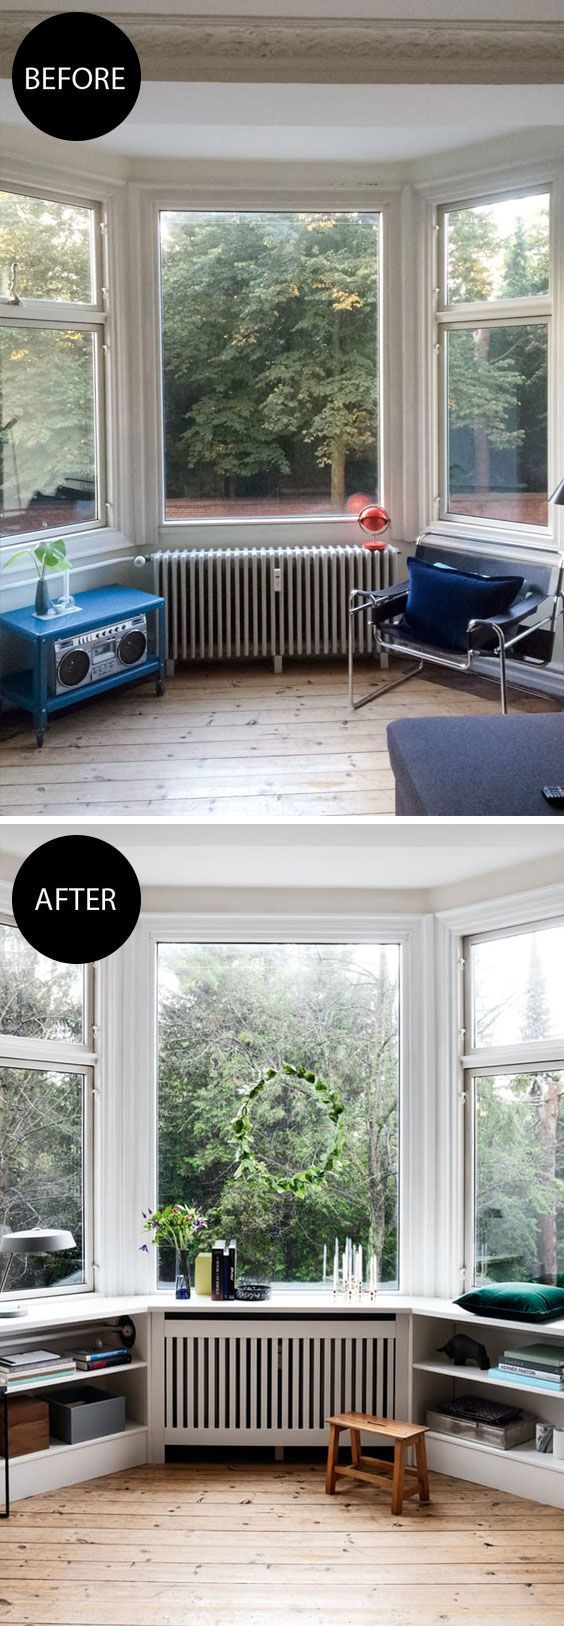 Transform your old bay window into a modern cosy corner.